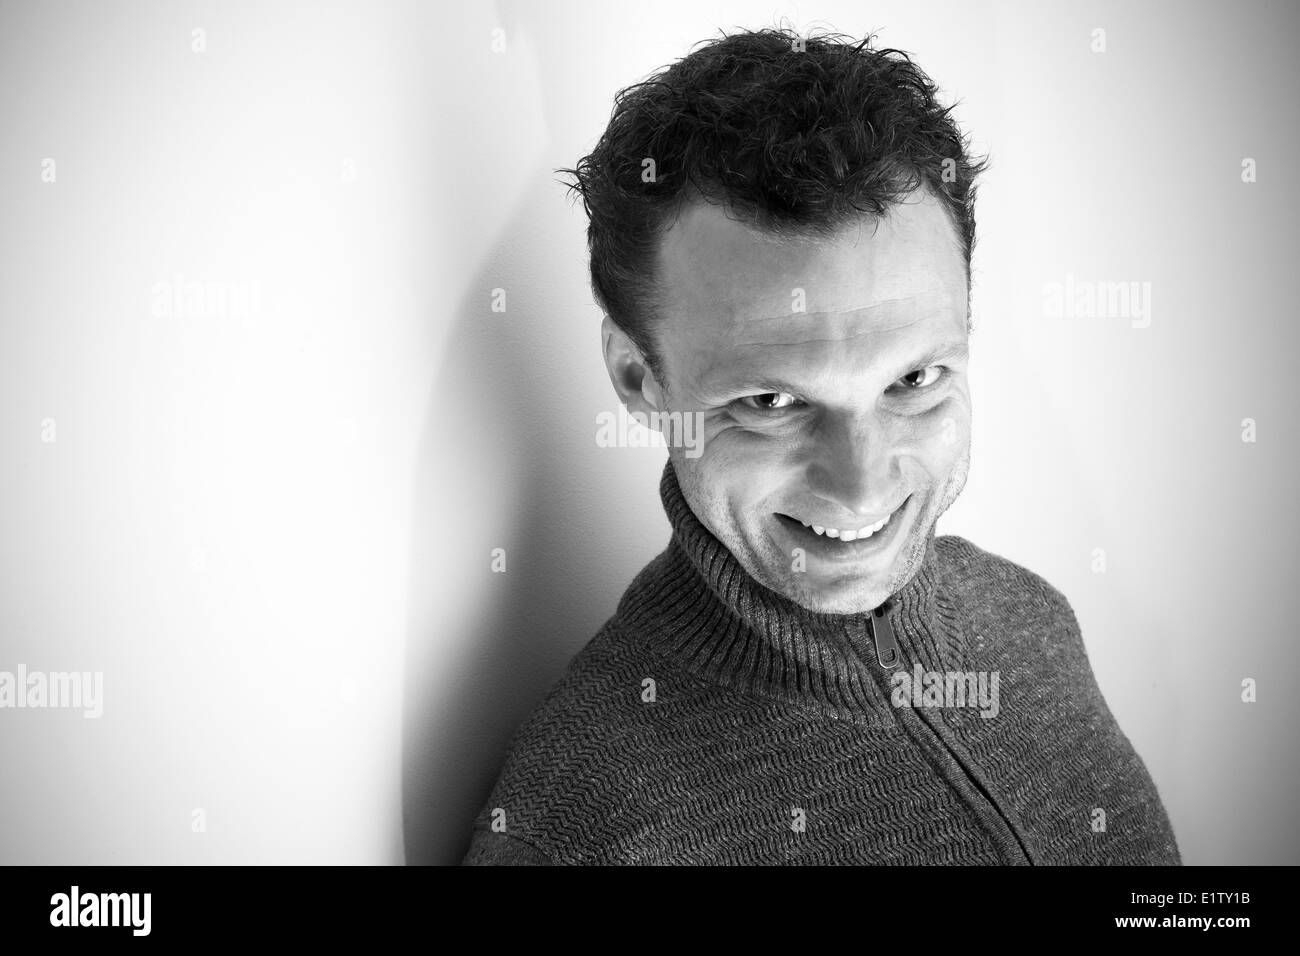 Angry laughing young Caucasian man monochrome portrait - Stock Image